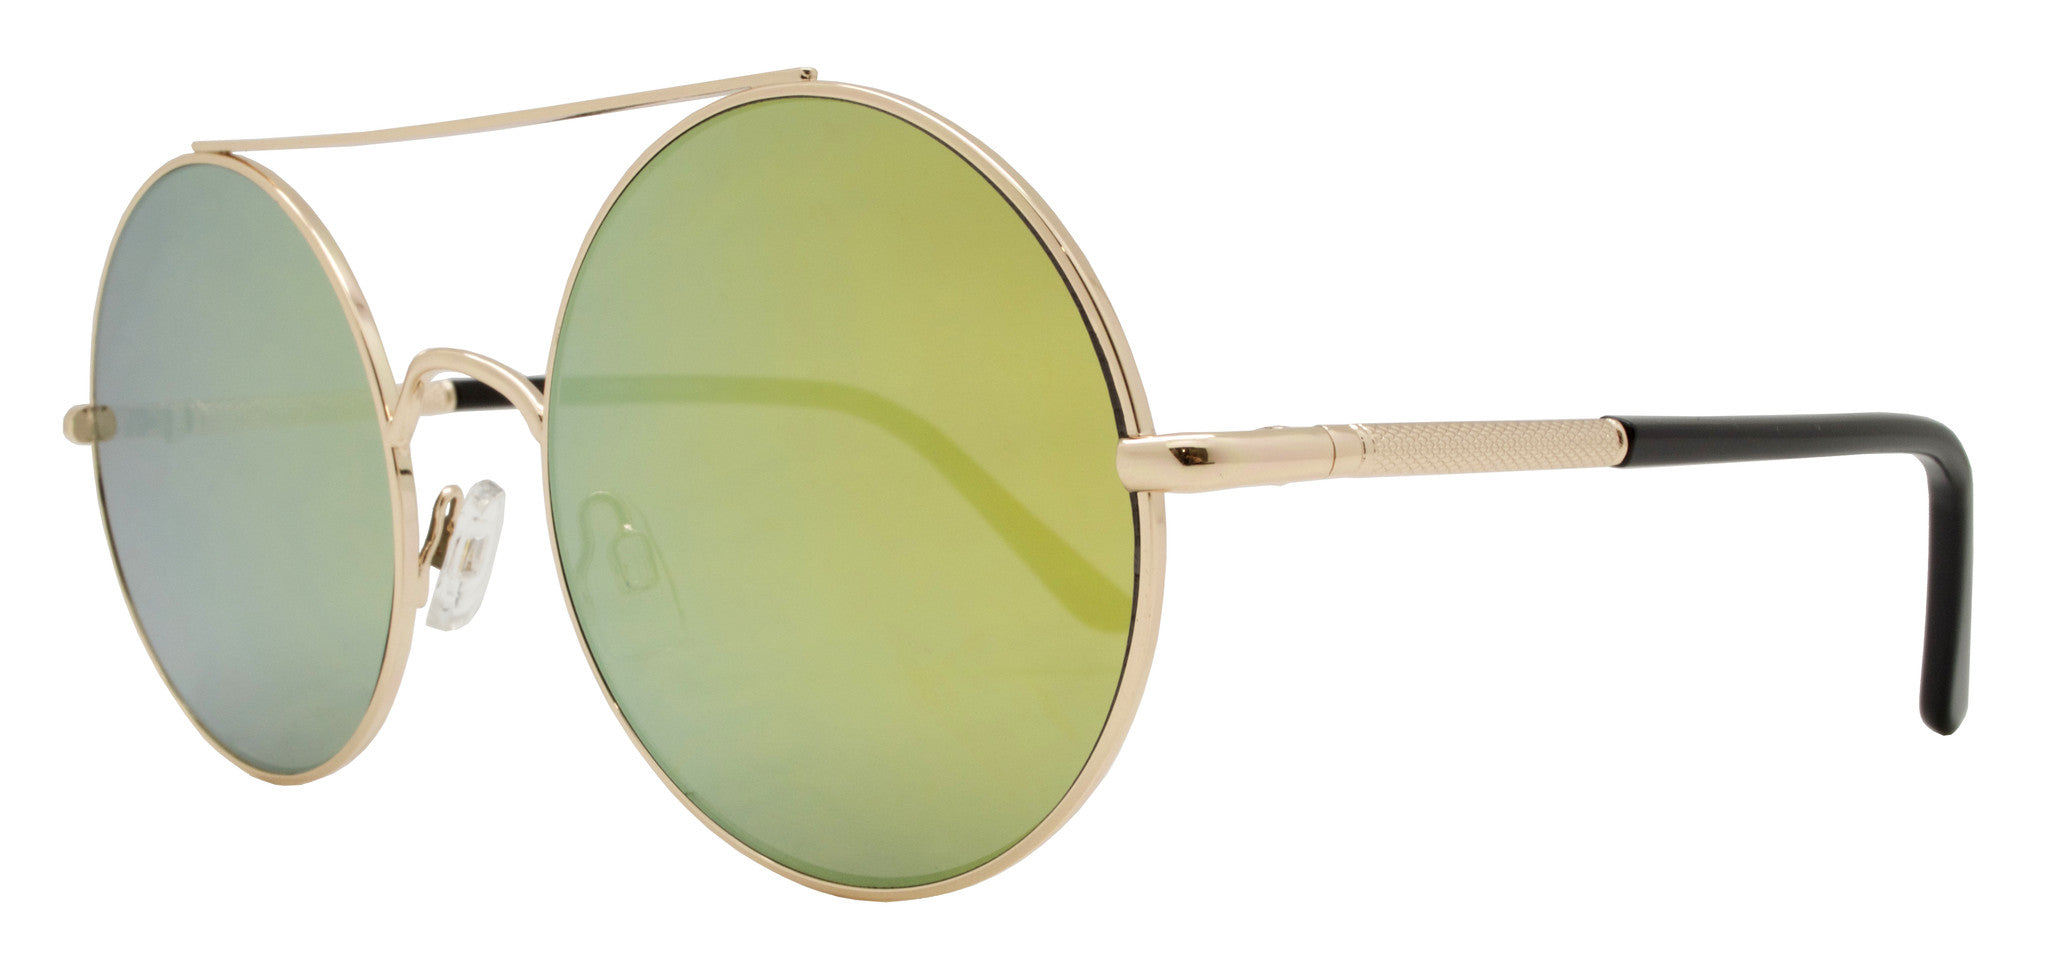 Dynasol Eyewear - Wholesale Sunglasses - FC 6230 RVC- Flat Lens Round Color Mirror Metal Sunglasses - sunglasses